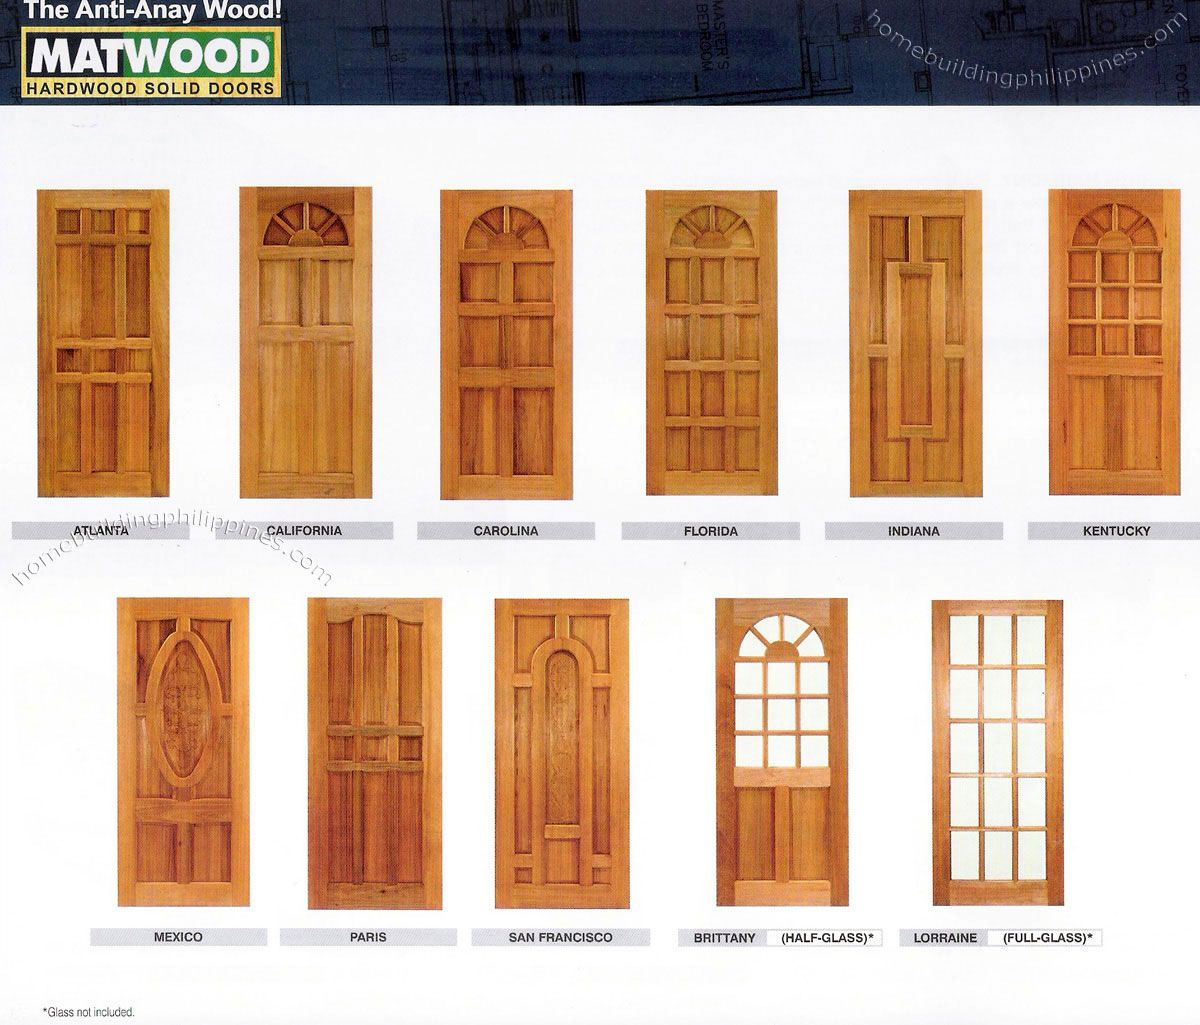 Bathroom Doors Philippines